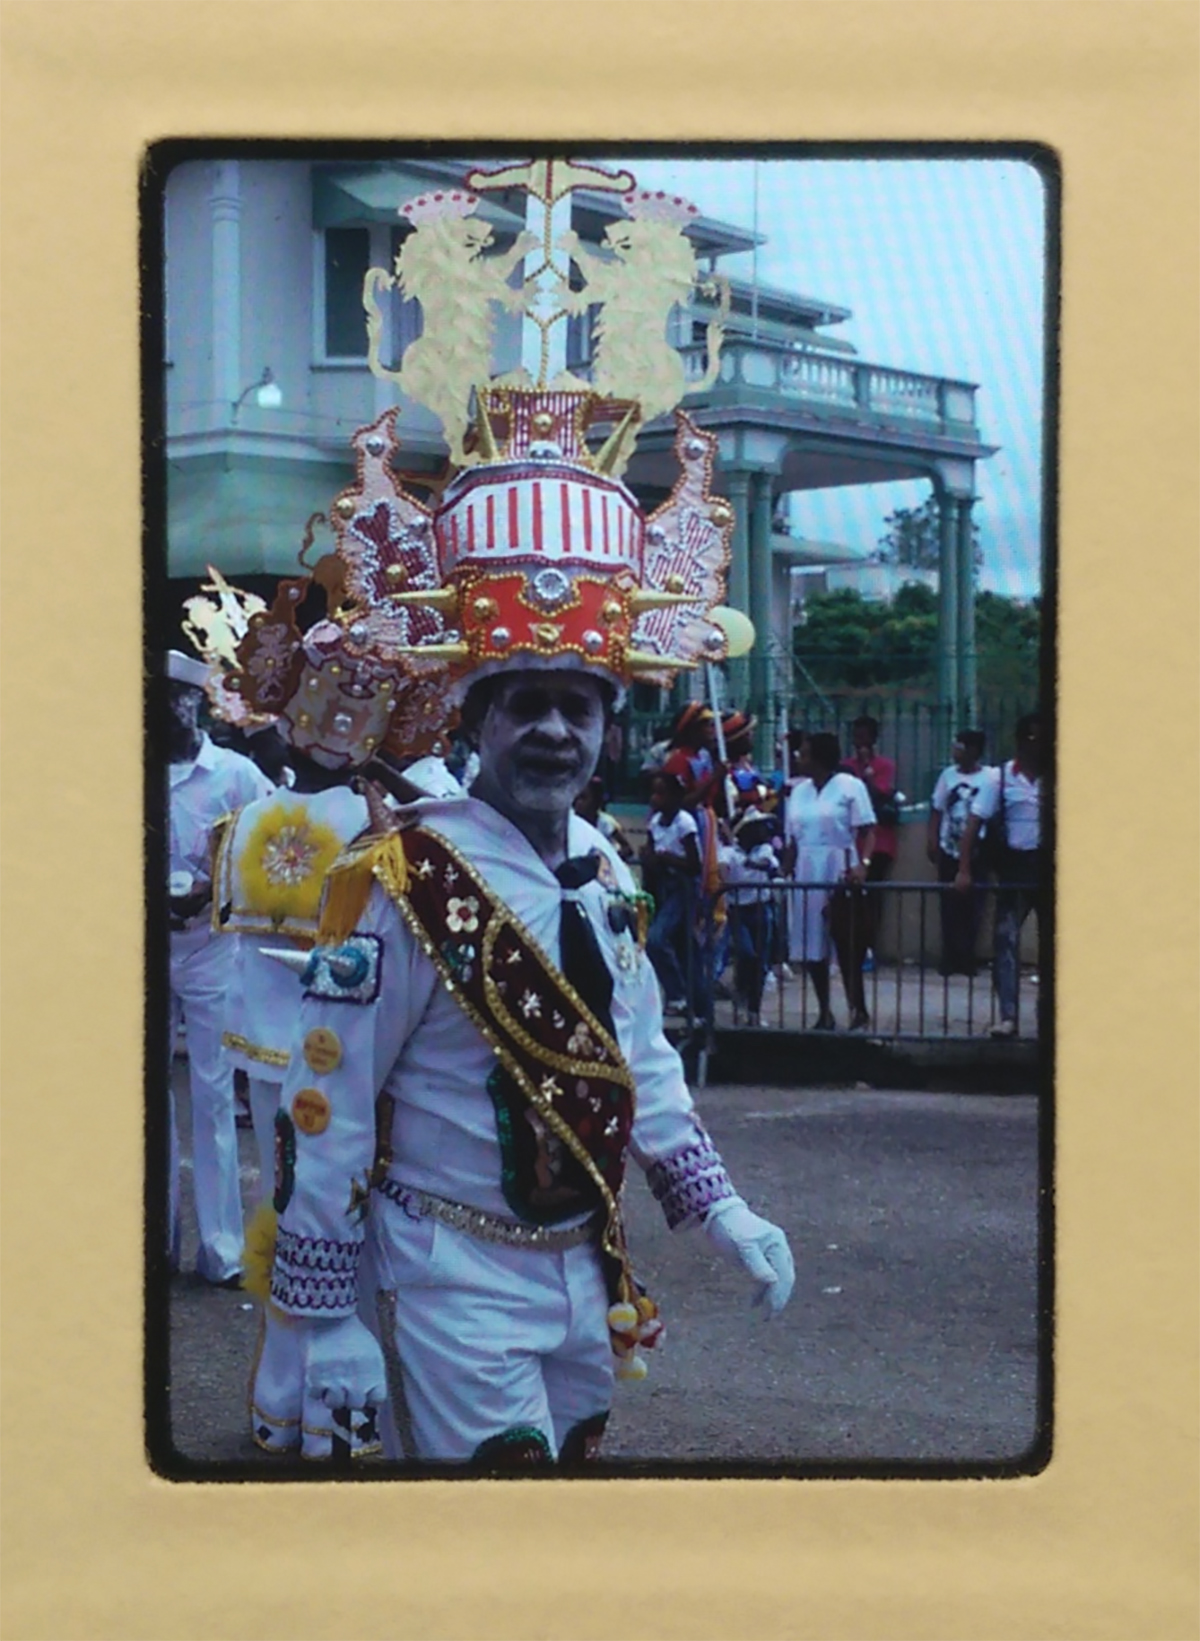 Caribbean festival performer from the Judith Bettelheim collection.